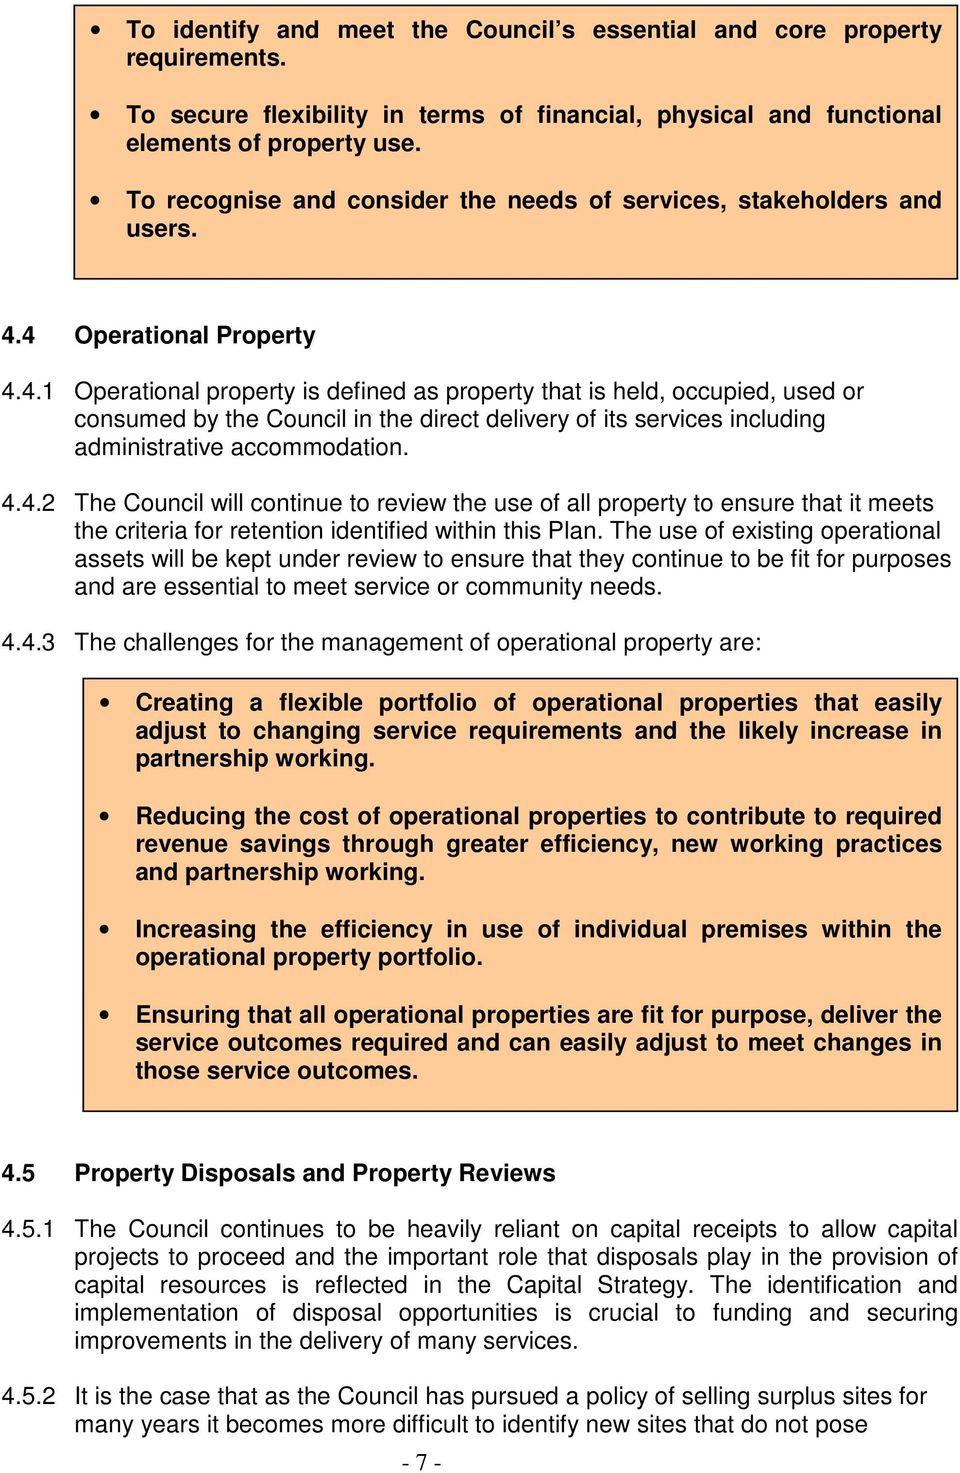 4 Operational Property 4.4.1 Operational property is defined as property that is held, occupied, used or consumed by the Council in the direct delivery of its services including administrative accommodation.